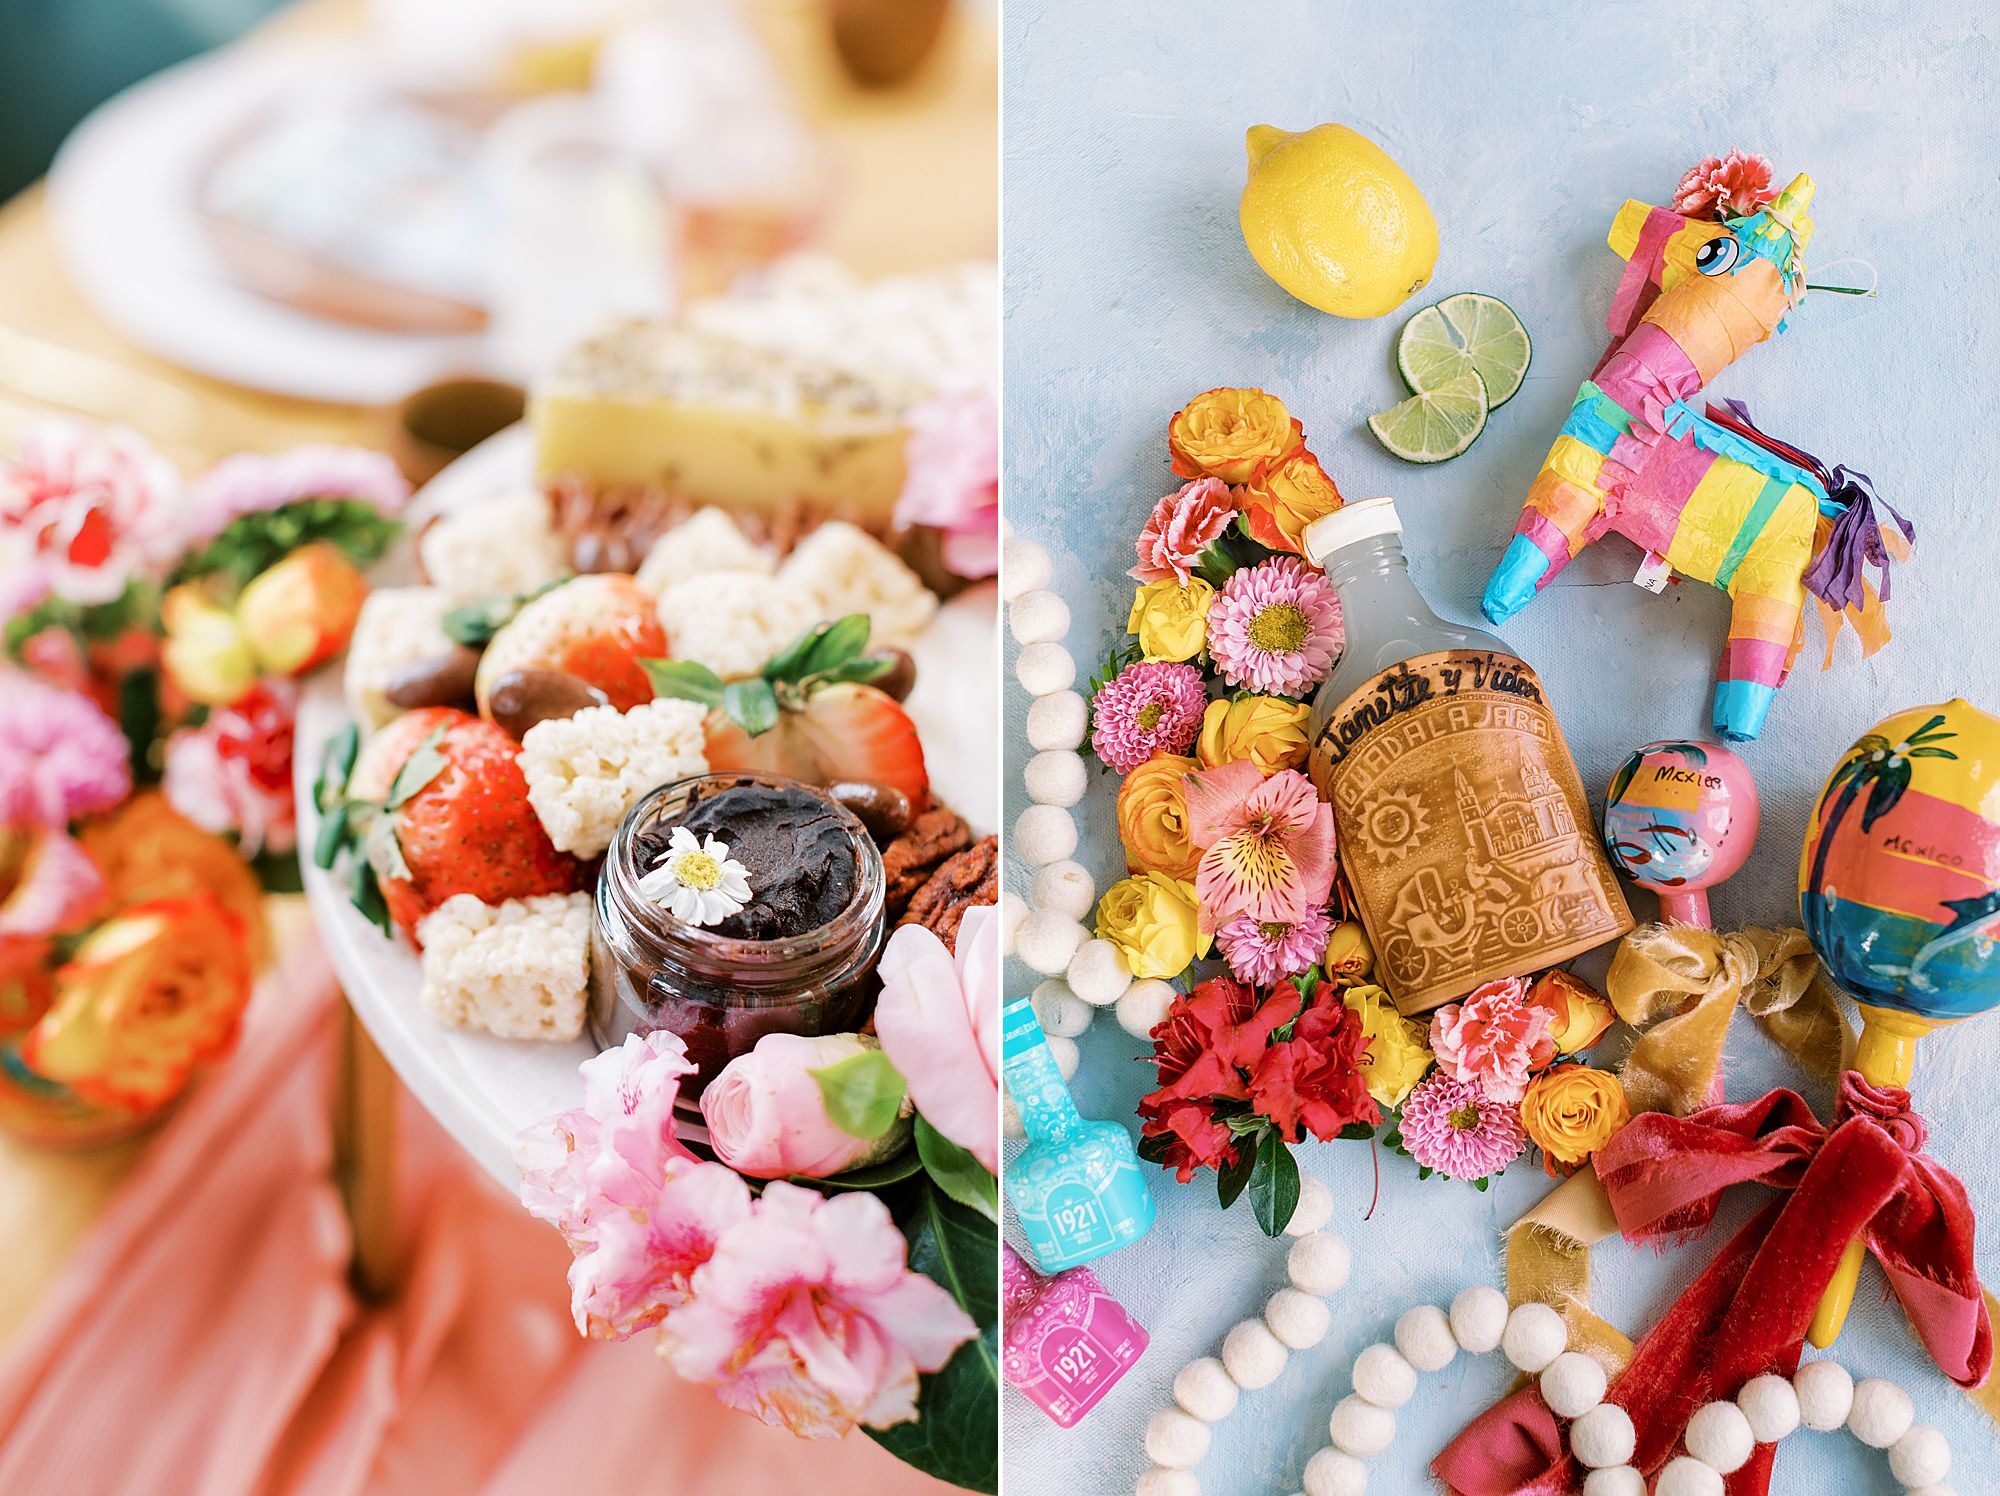 Cinco De Mayo Inspiration for Your FIesta - Party Crush Studio and Ashley Baumgartner_0061.jpg